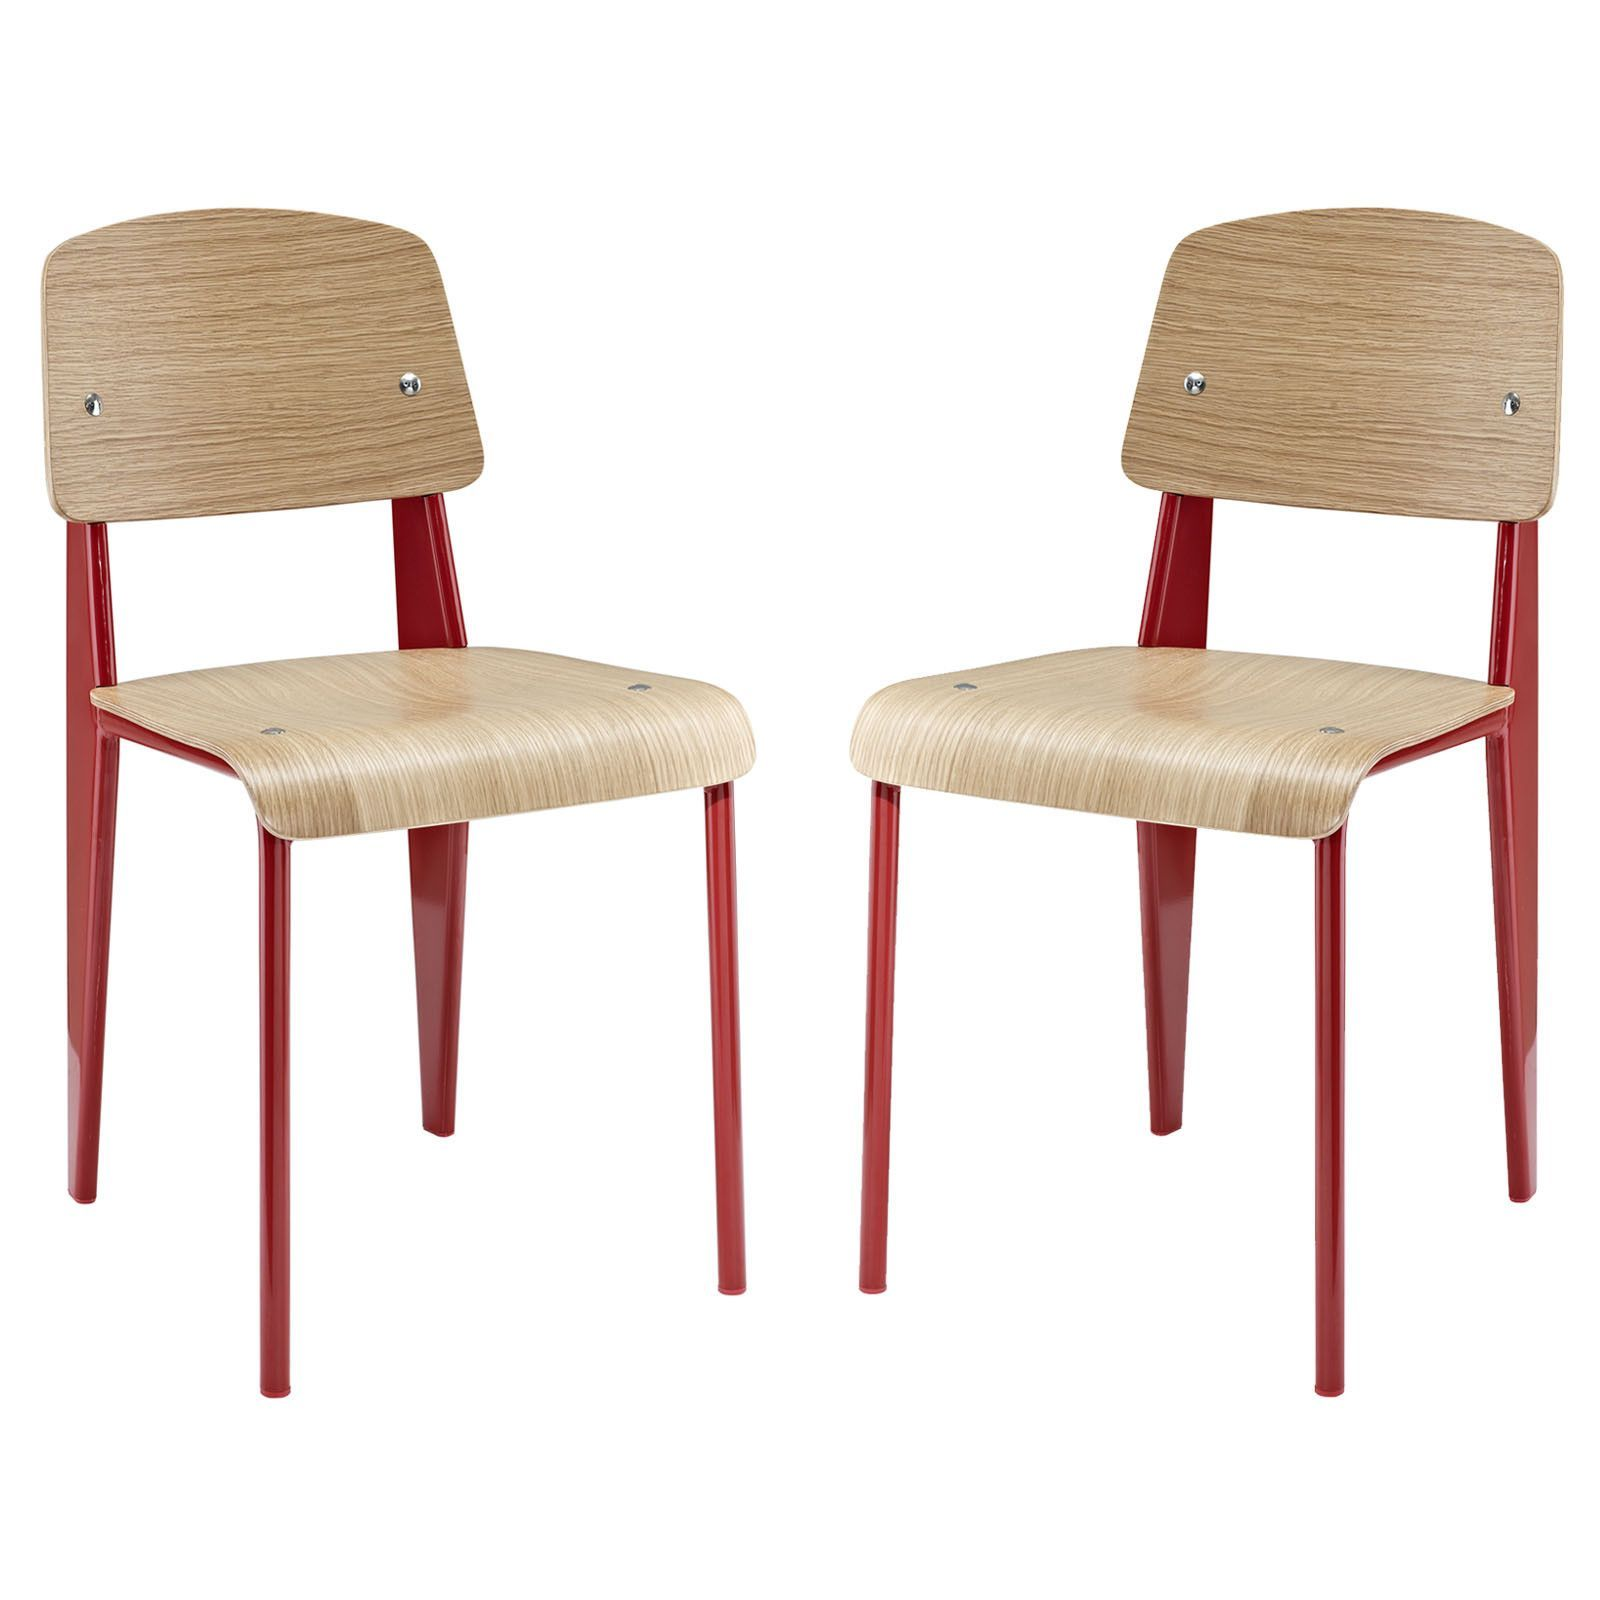 Shed Dining Side Chair Set of 2